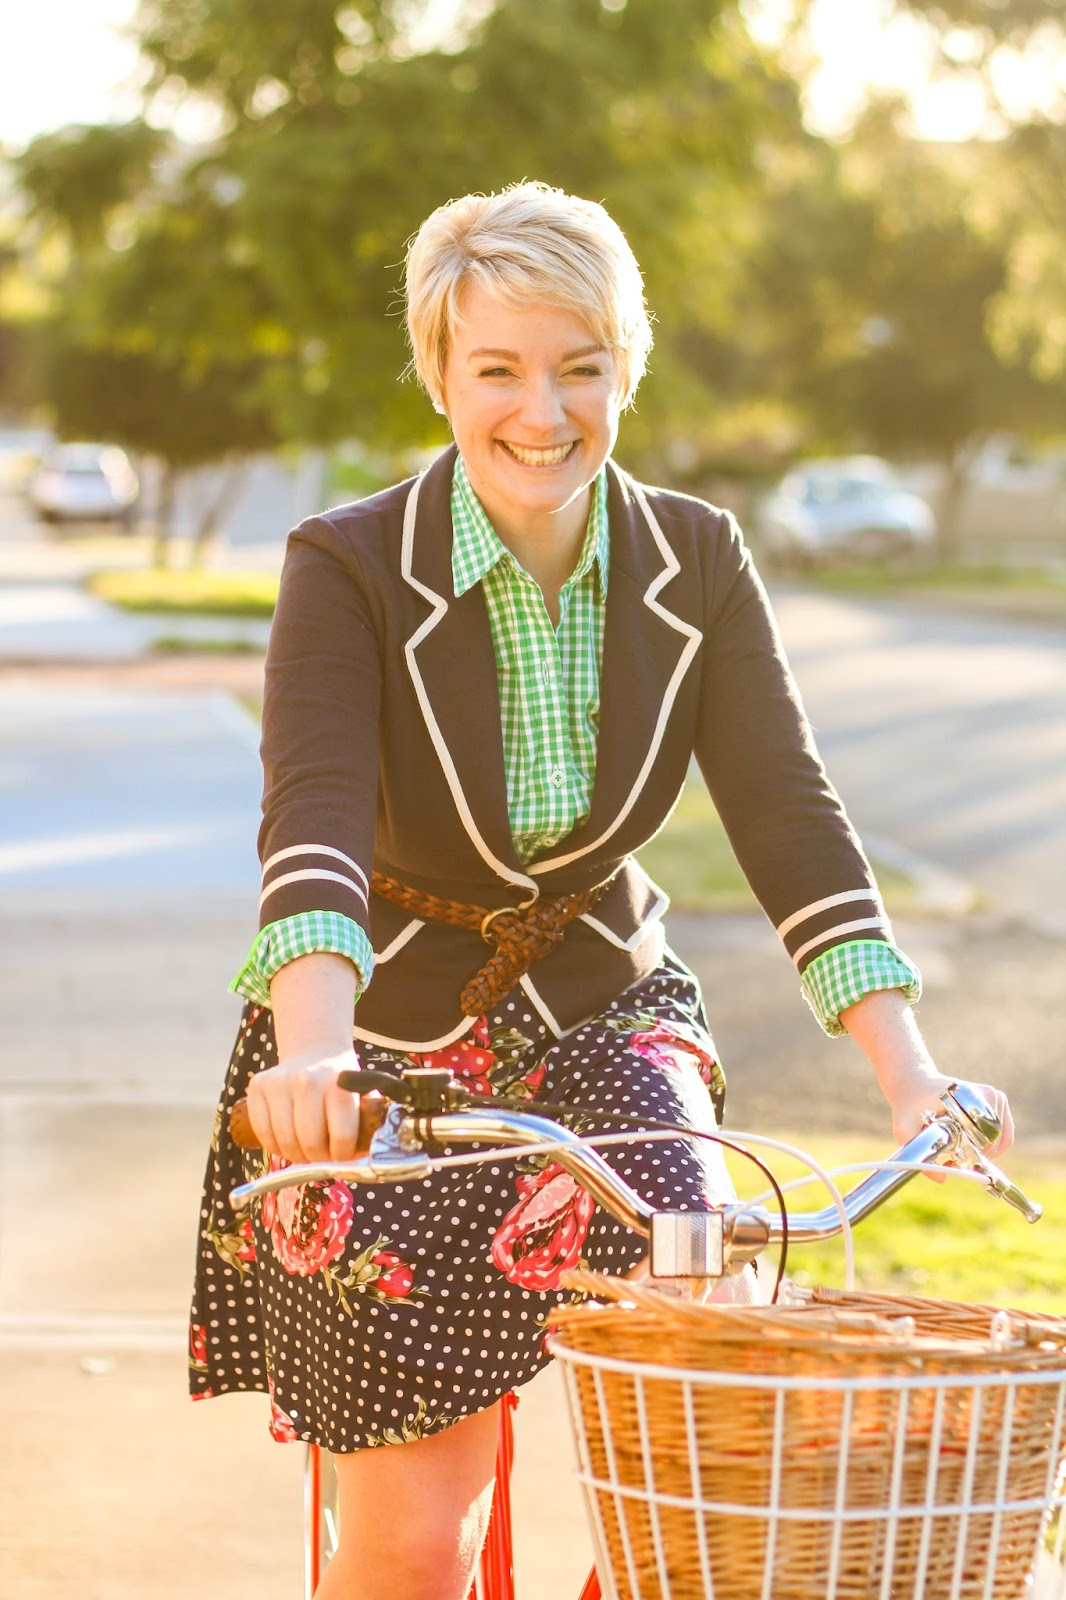 Liana of Finding Femme wears Modcloth Academia Ahoy blazer in navy, C Wonder green gingham shirt, Modcloth navy polka dot and floral a-line skirt with red Reid Cycle bike.